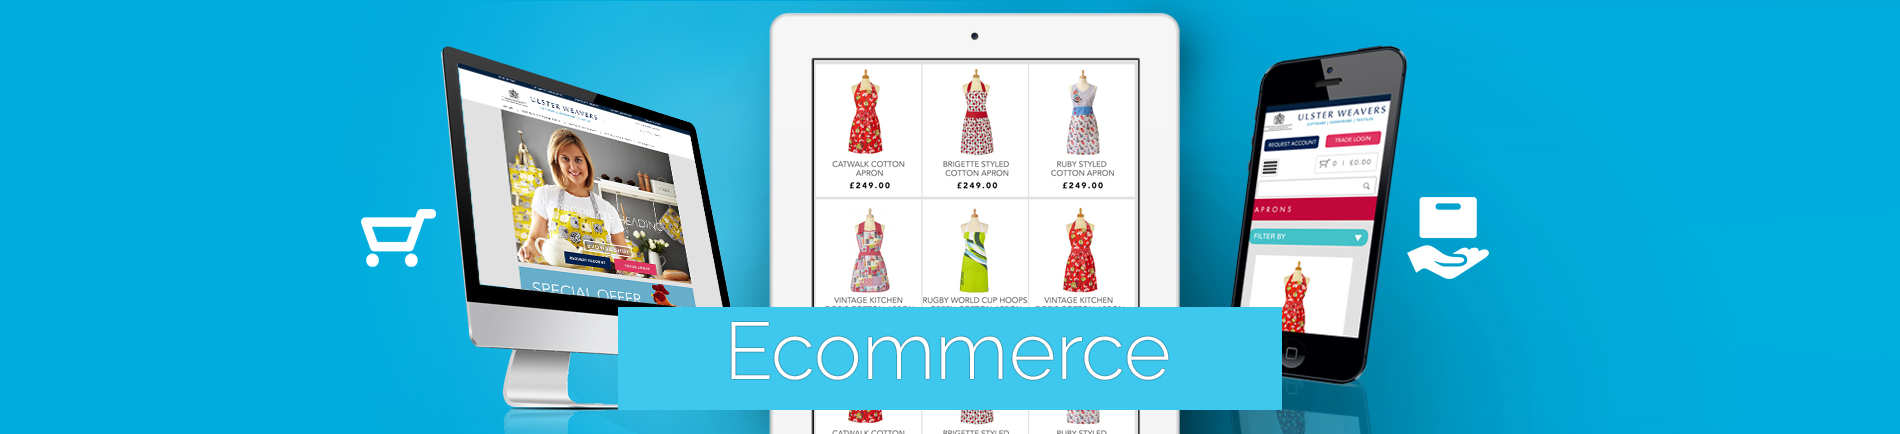 7 Things Successful Ecommerce Websites Have in Common